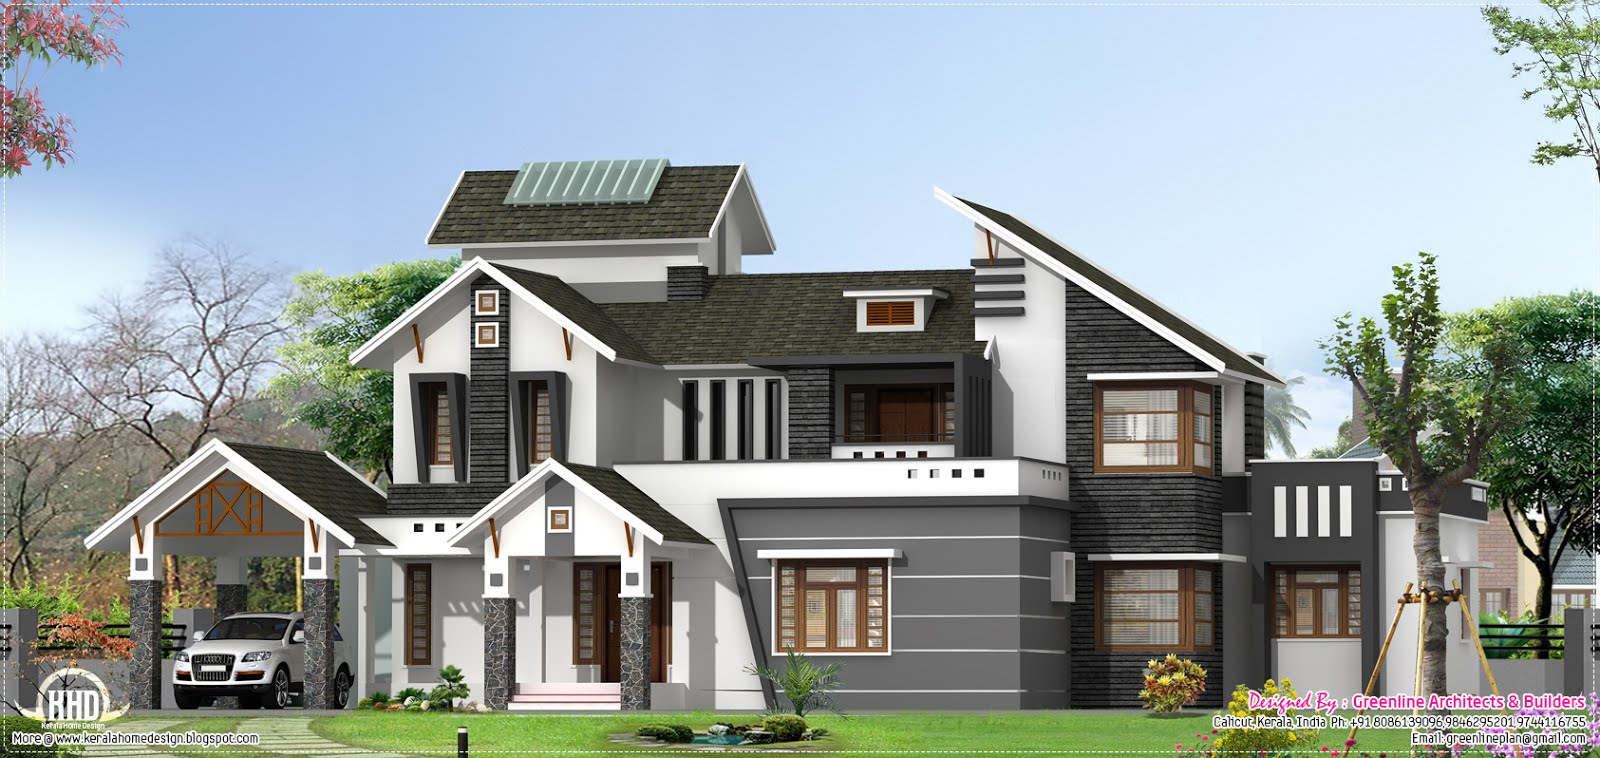 Modern 5 bedroom home design kerala home design and for 3000 sq ft house plans kerala style